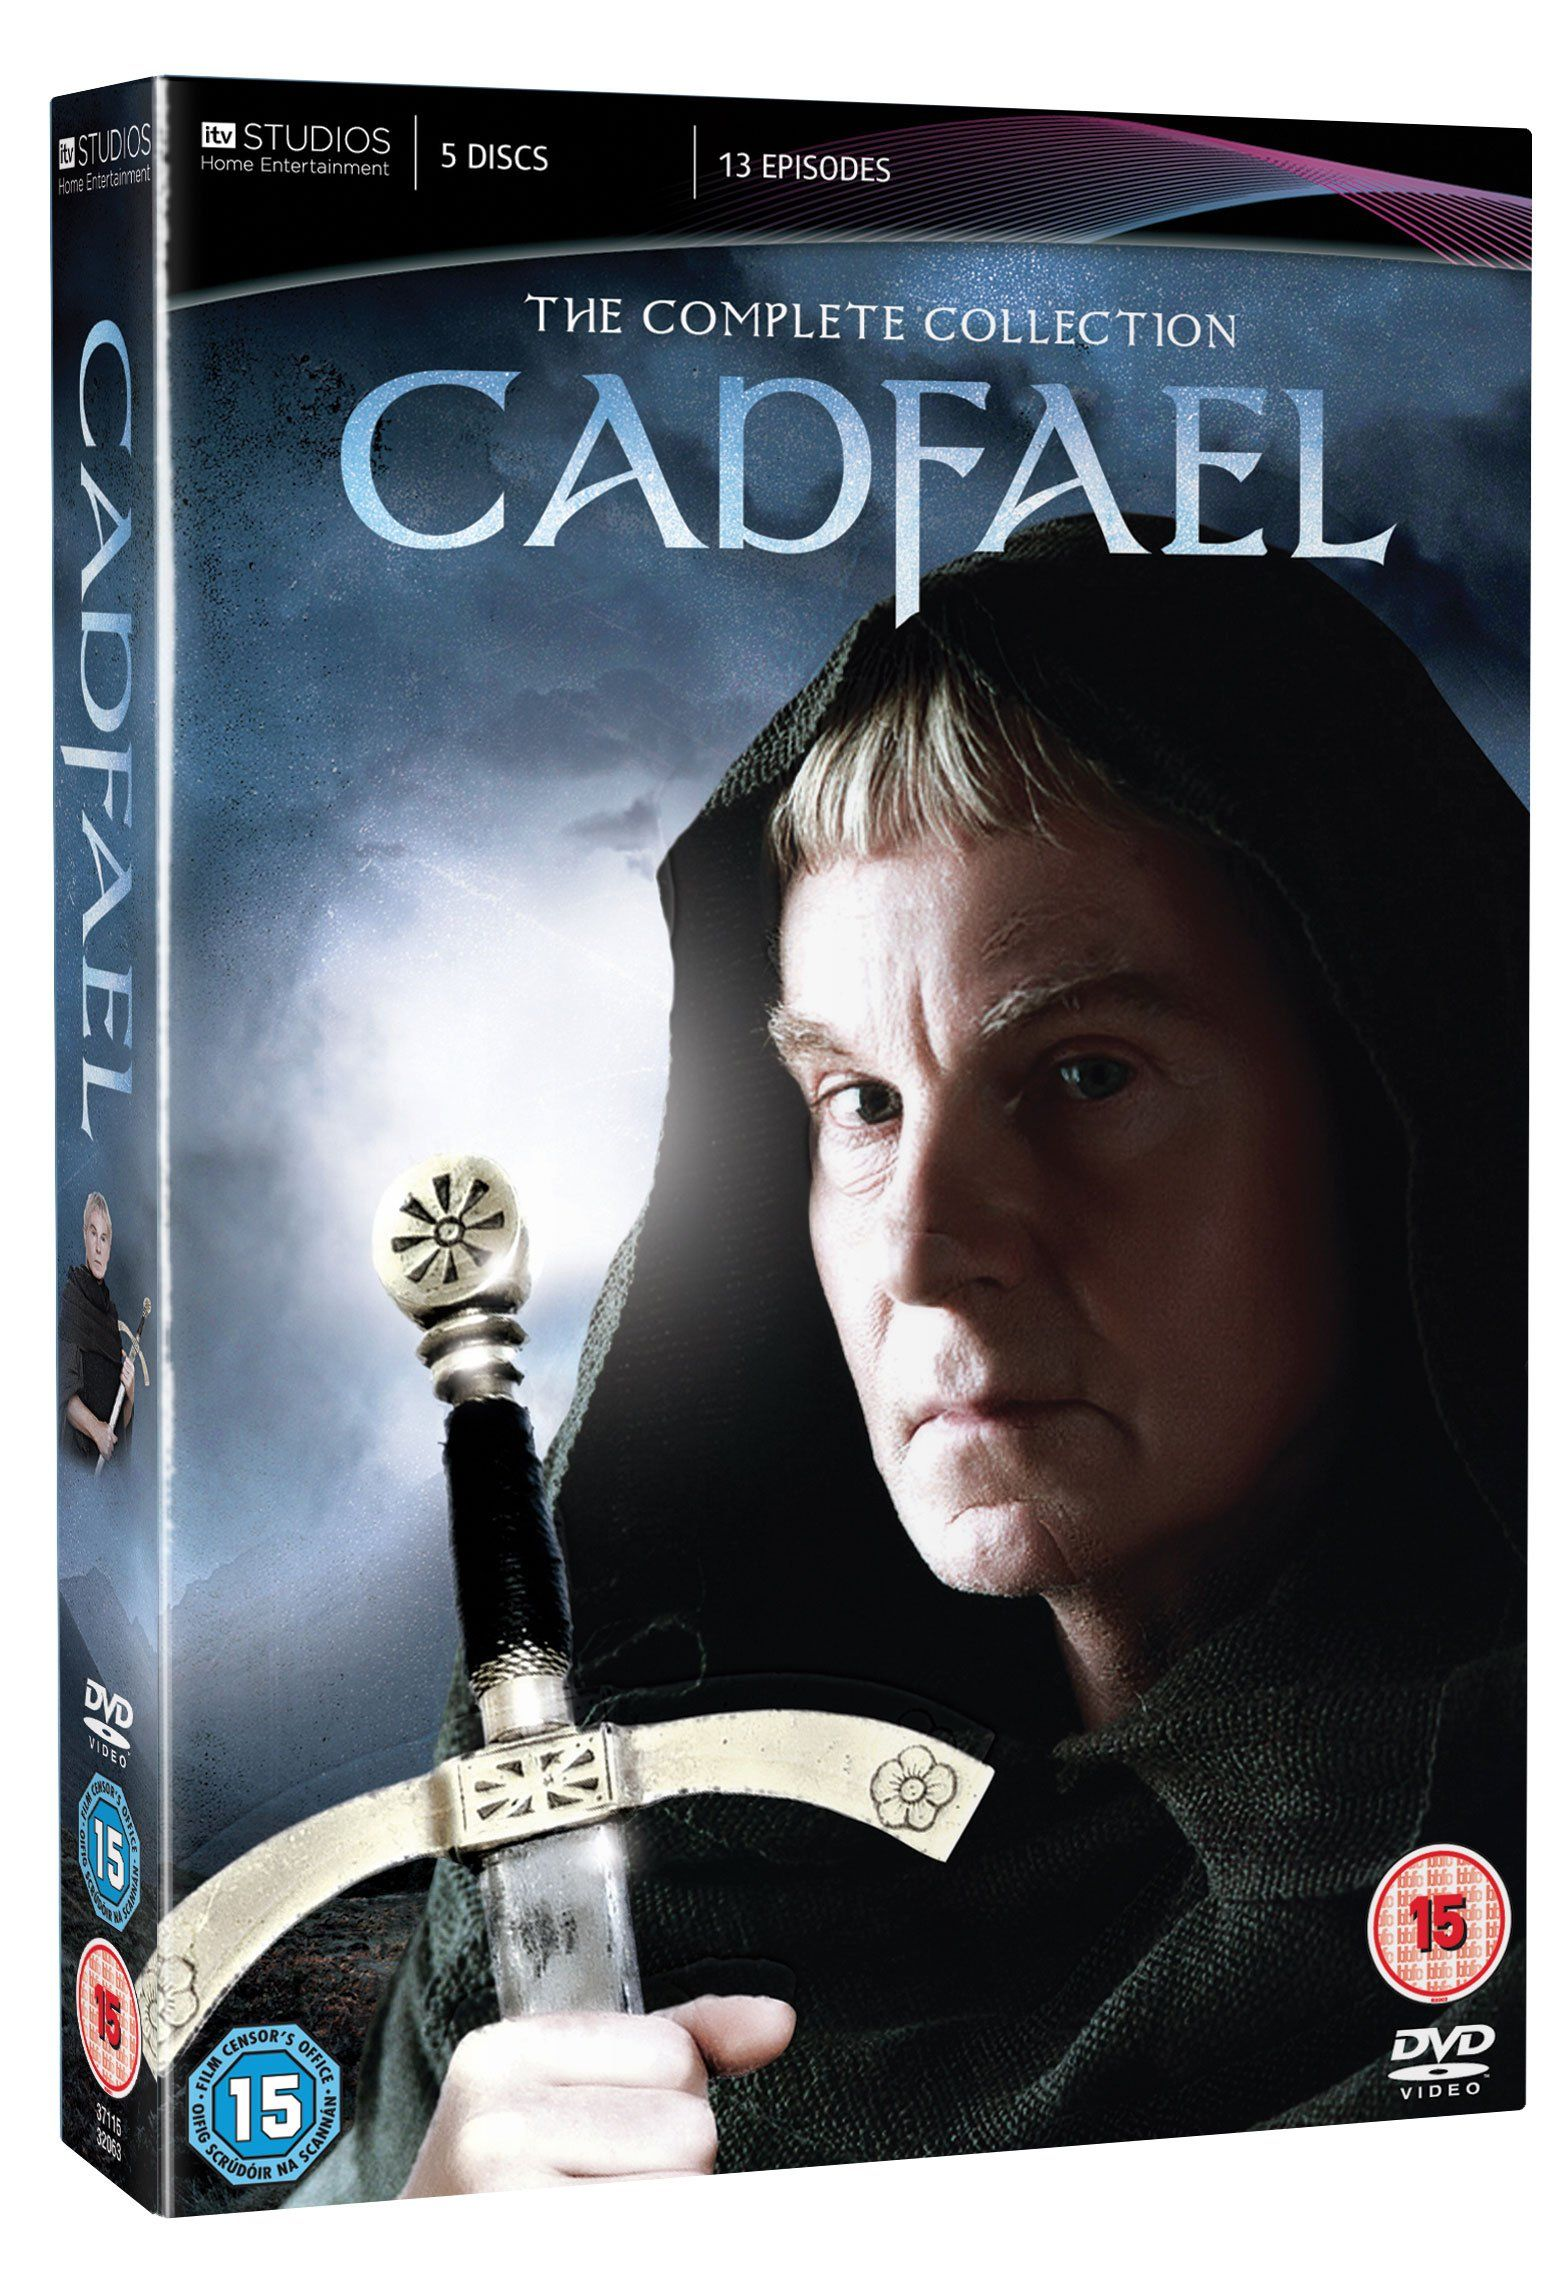 Cadfael The Complete Collection [DVD] Amazon.co.uk